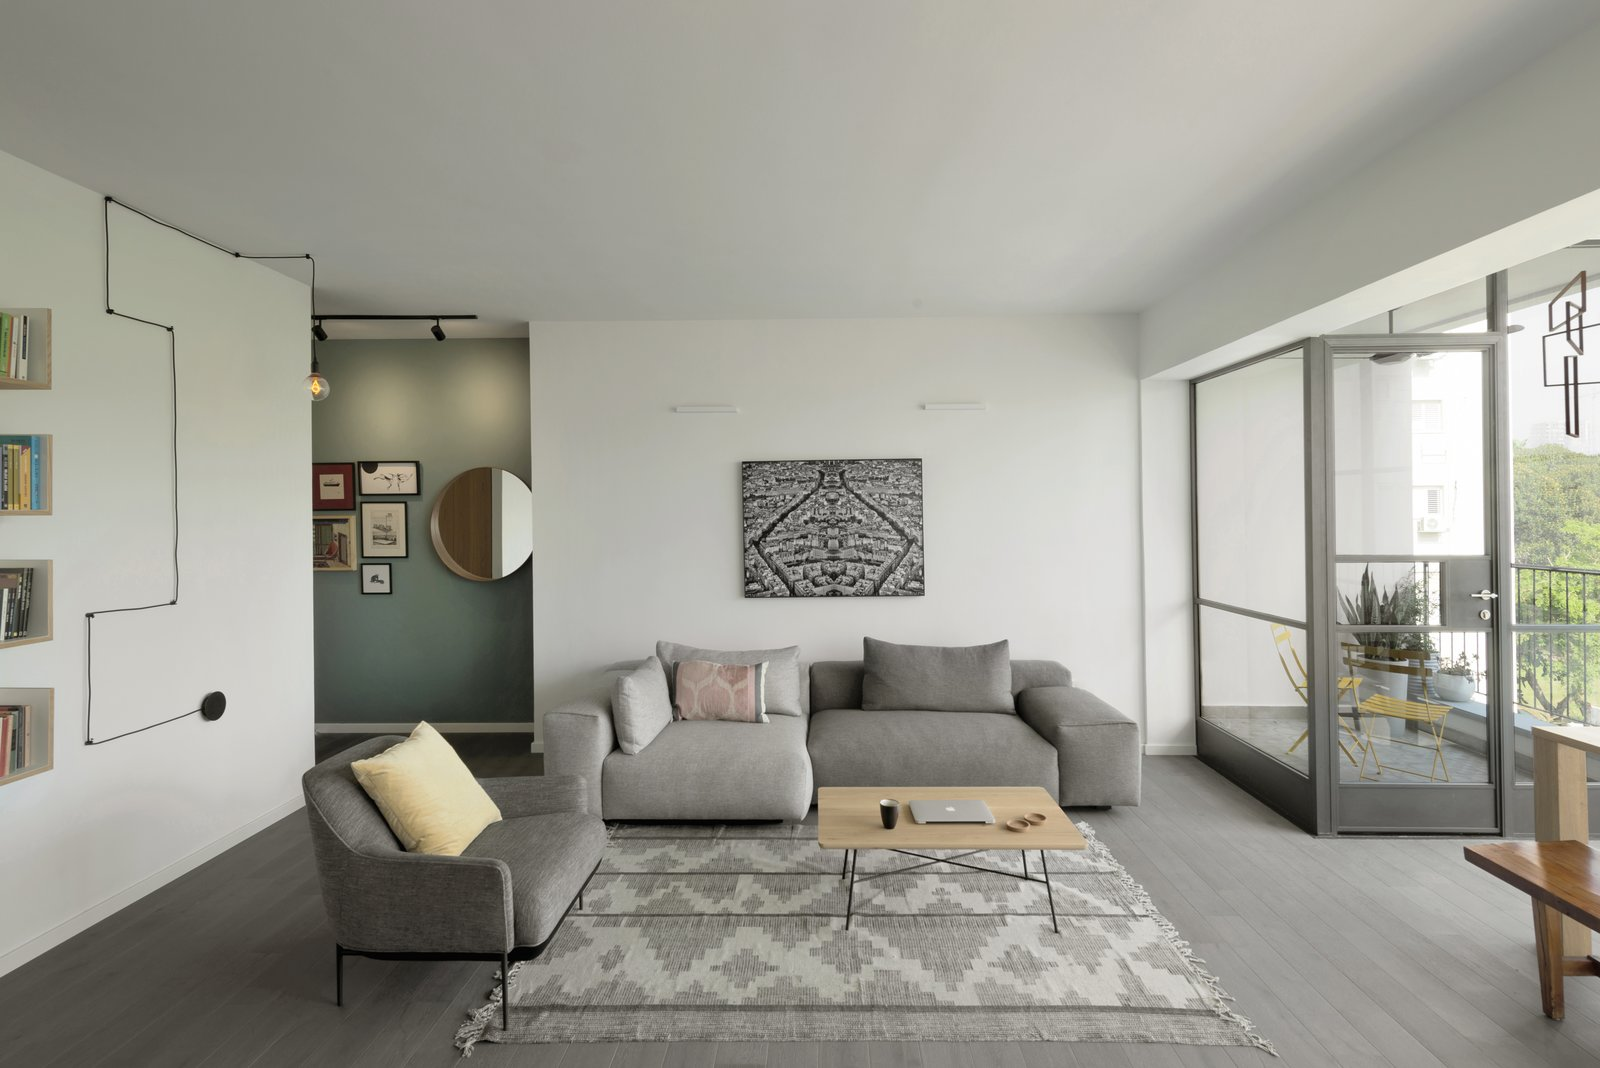 Living, Rug, Chair, Shelves, Wall, Pendant, Coffee Tables, Sofa, Light Hardwood, and Track  Best Living Track Shelves Photos from Graphic Design Guides an Apartment Renovation in Tel Aviv